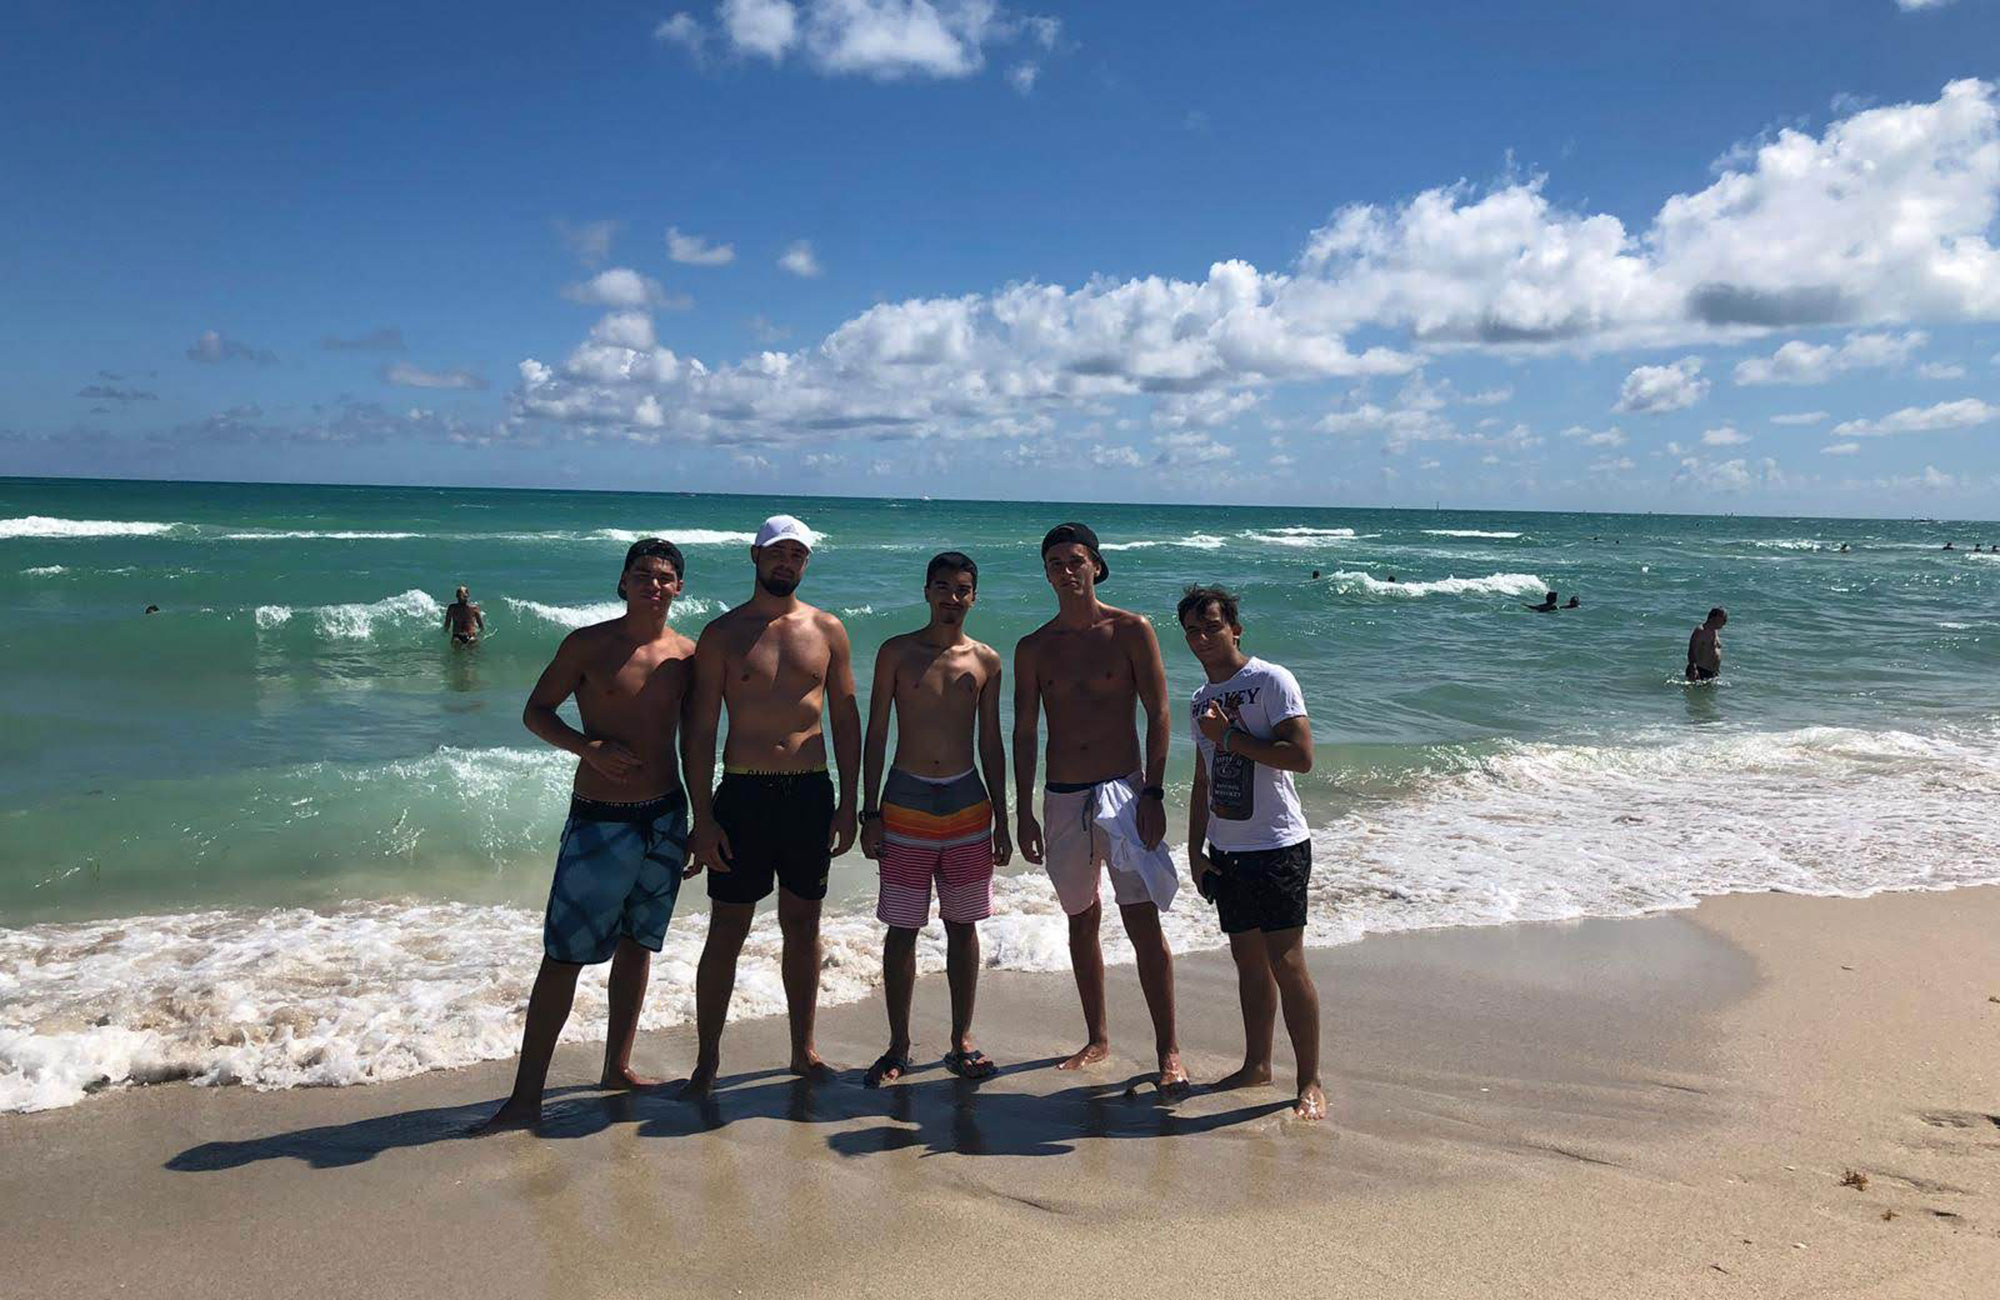 gavin with friends in florida